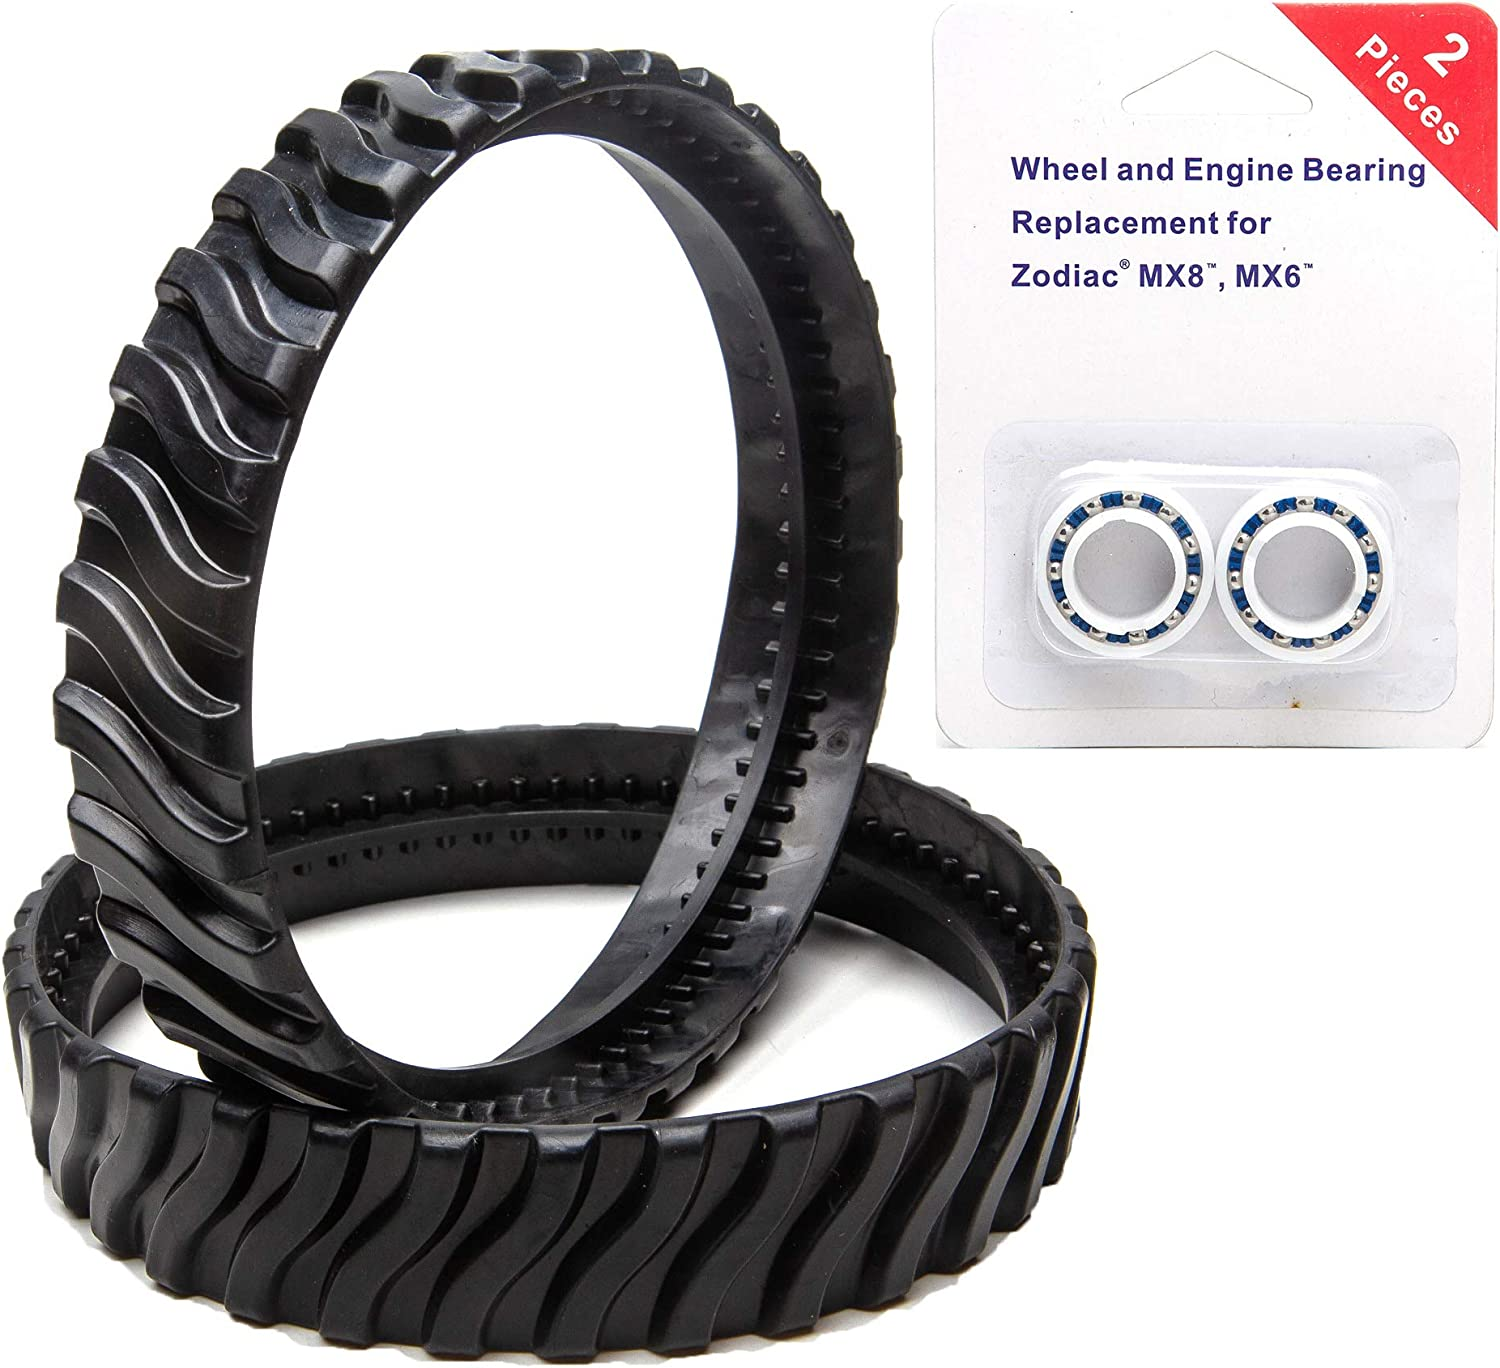 ATIE Pool Cleaner Tune-Up Rebuild Kit Replacement for Zodiac MX8 MX6 Pool Cleaner Including 2 Engine Bearings R0527000 and 2 Tire Tracks R0526100 Replacement